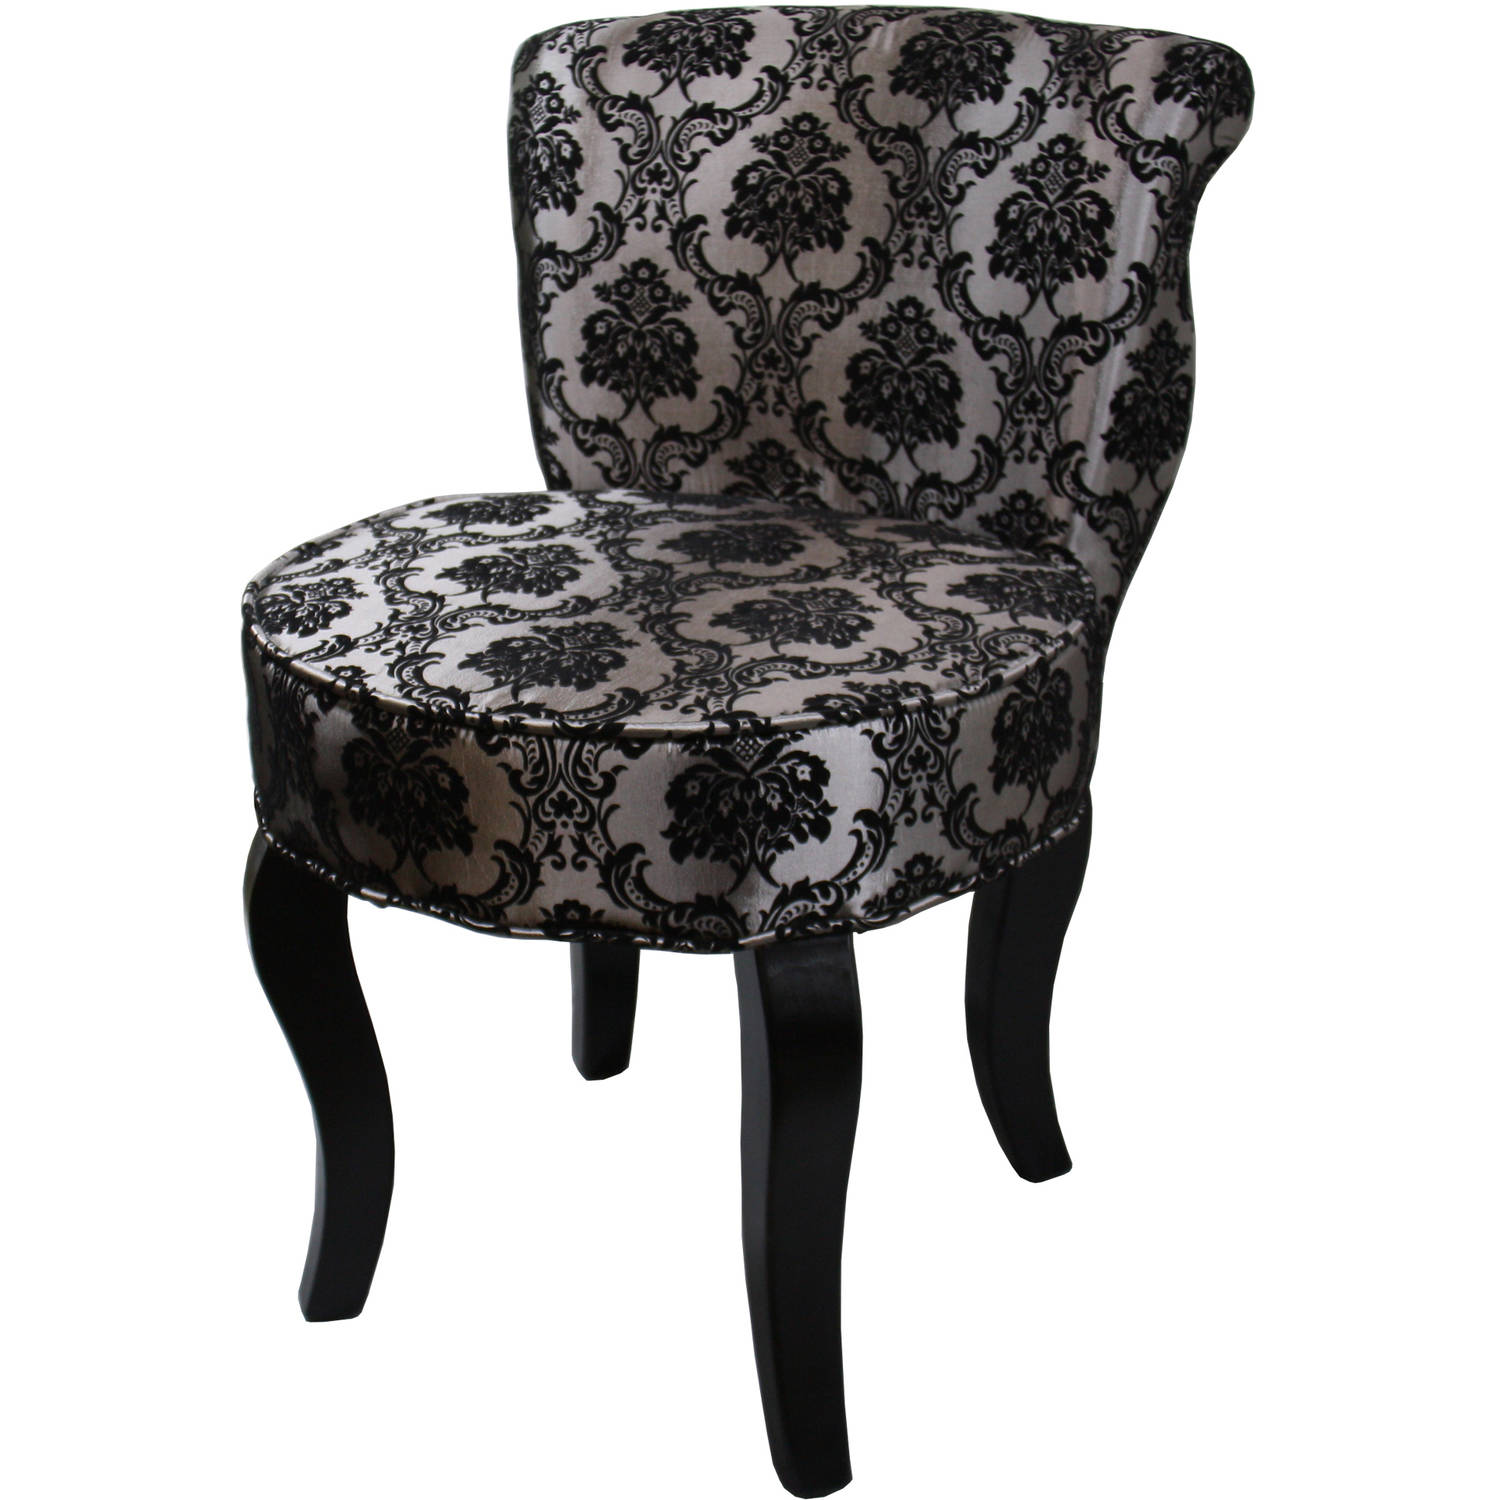 "31"" French Black and Grey Damask Accent Chair"